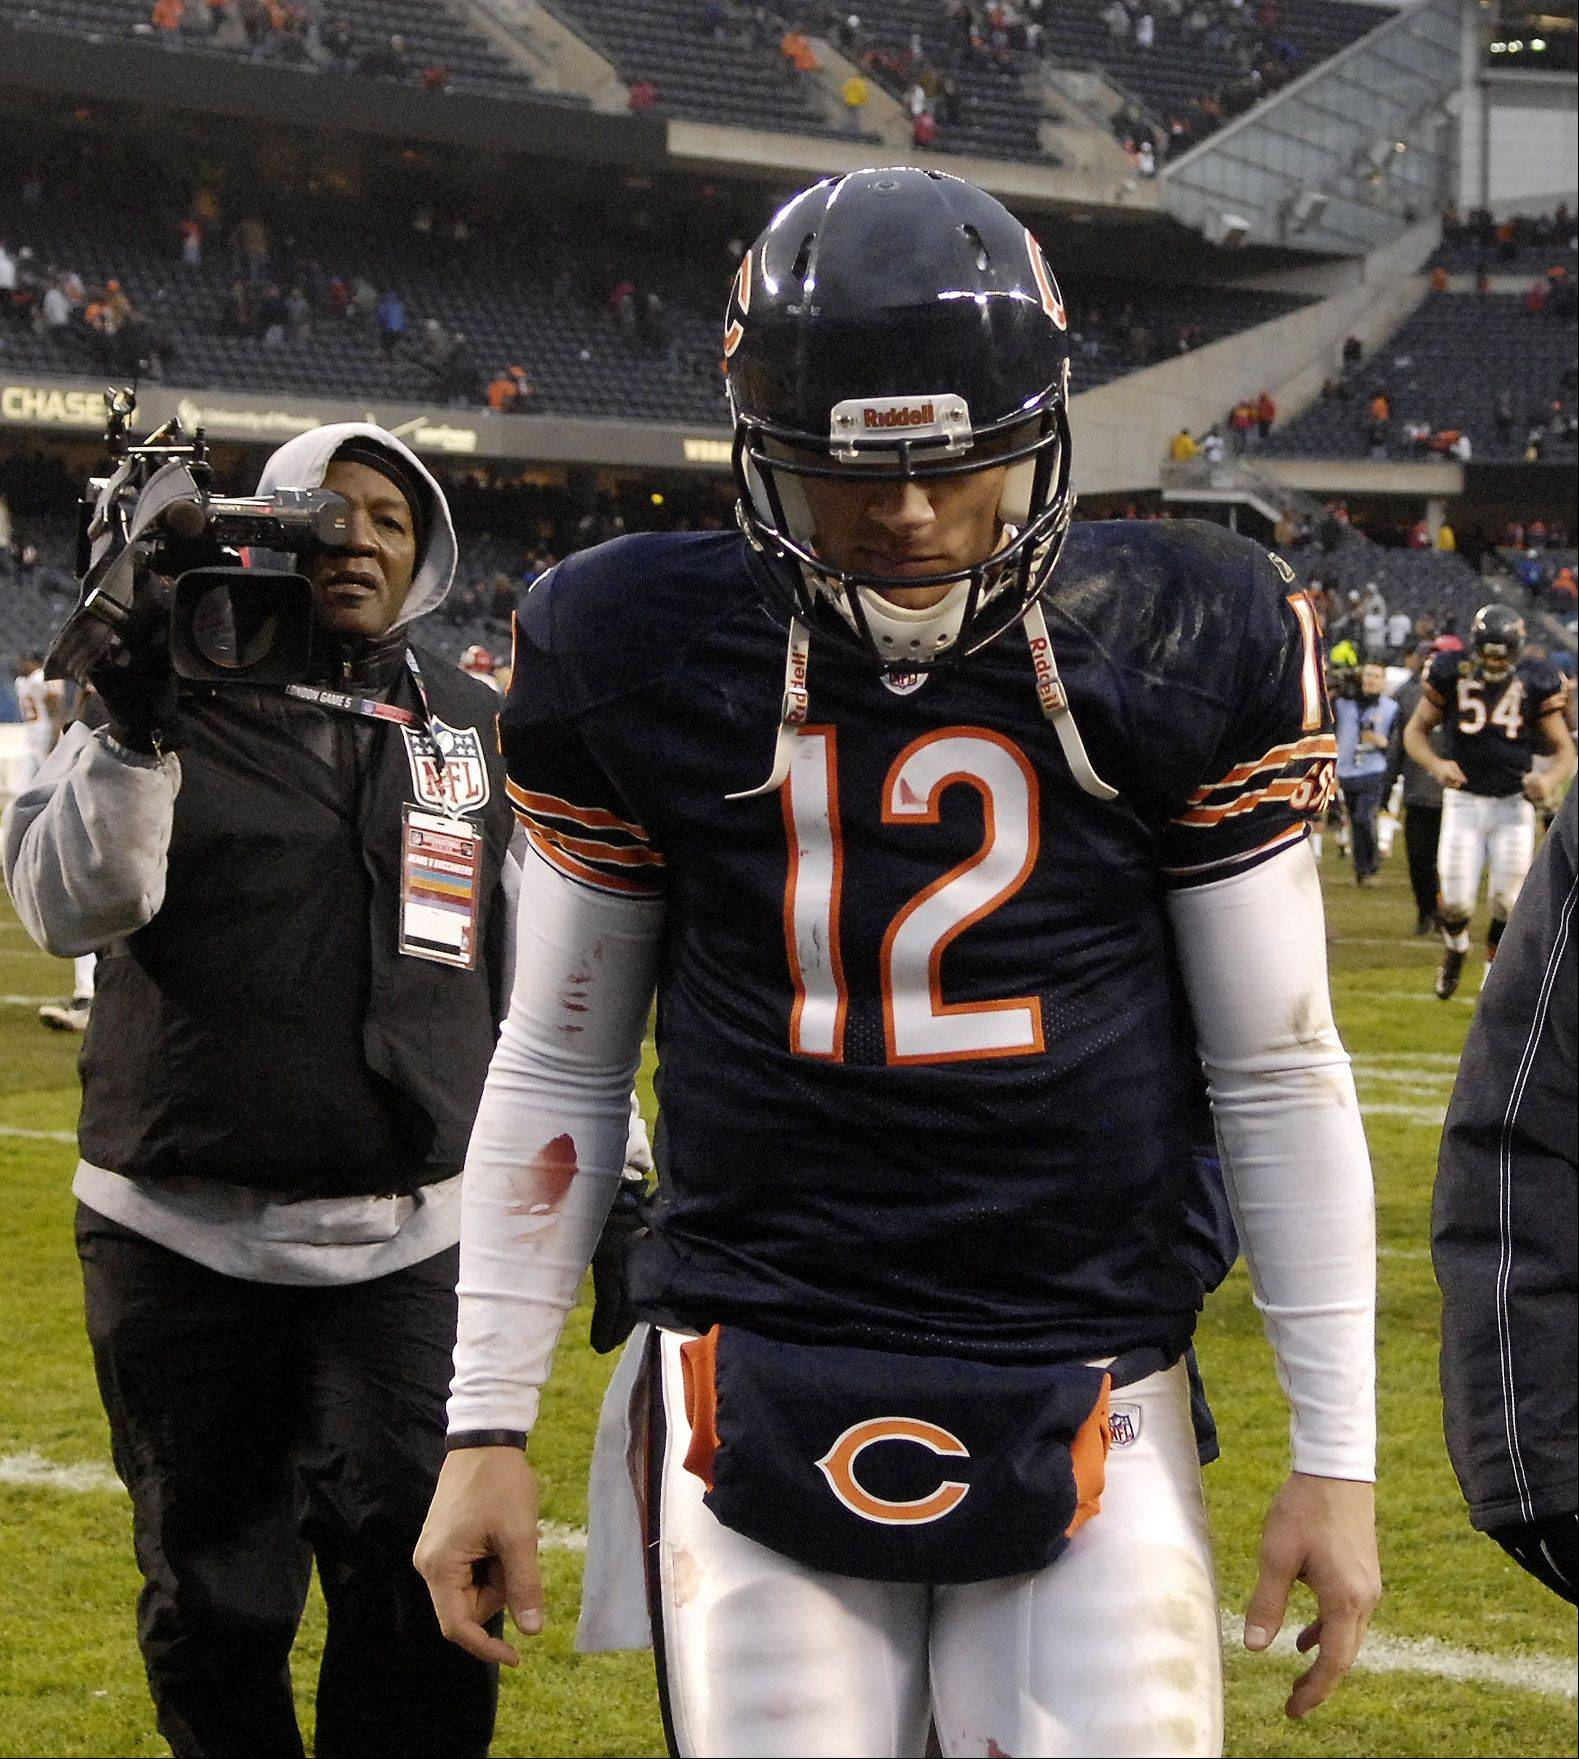 Chicago Bears quarterback Caleb Hanie (12) walks off the field after Sunday's loss to Kansas City at Soldier Field.